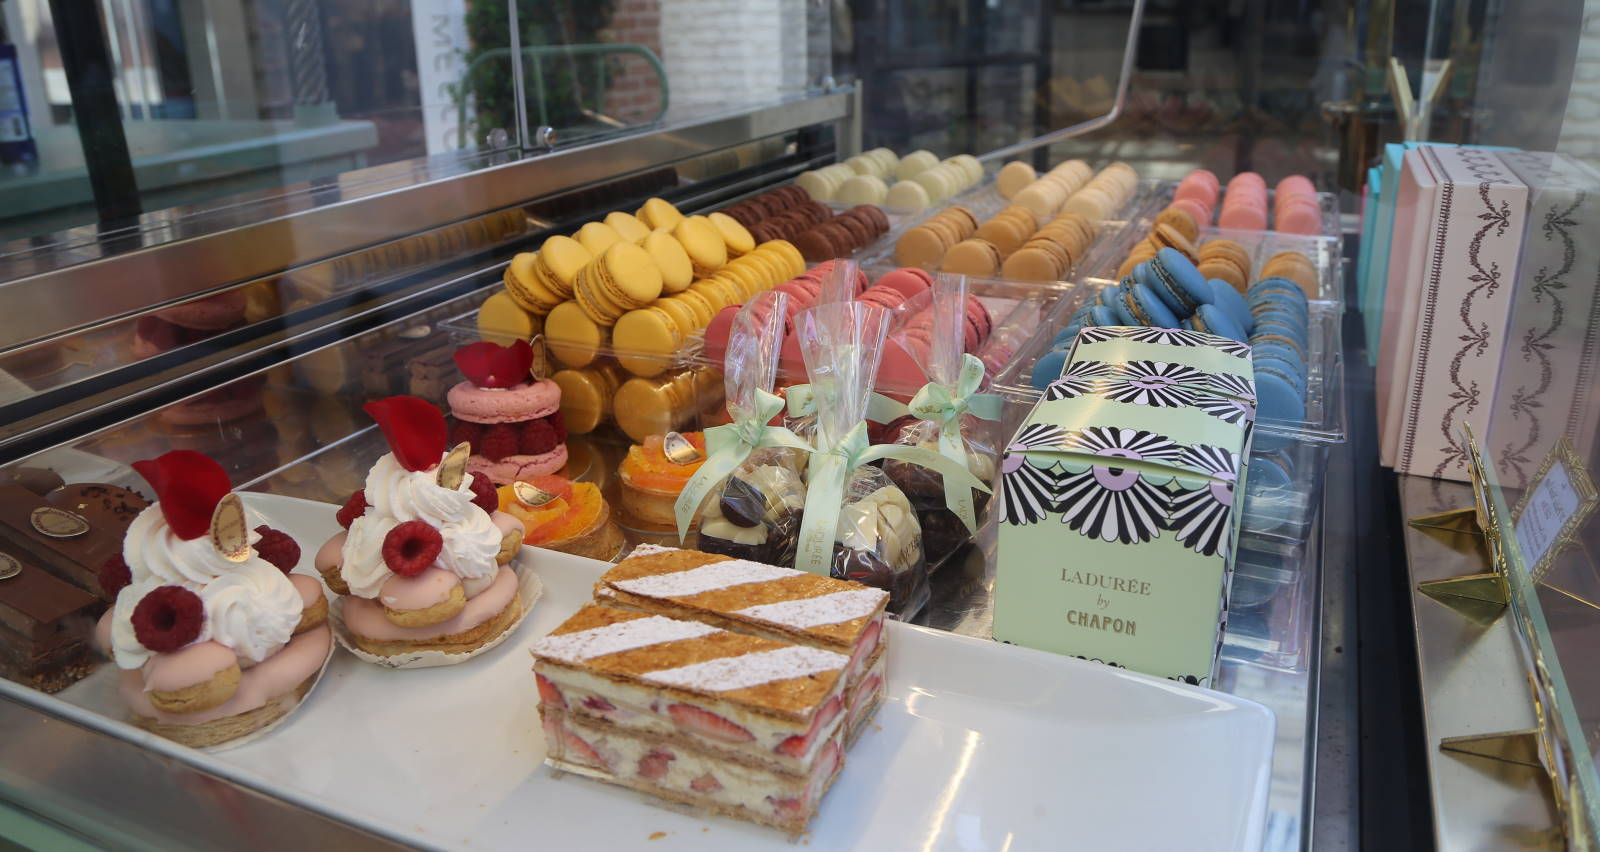 Laduree at Palisades Village